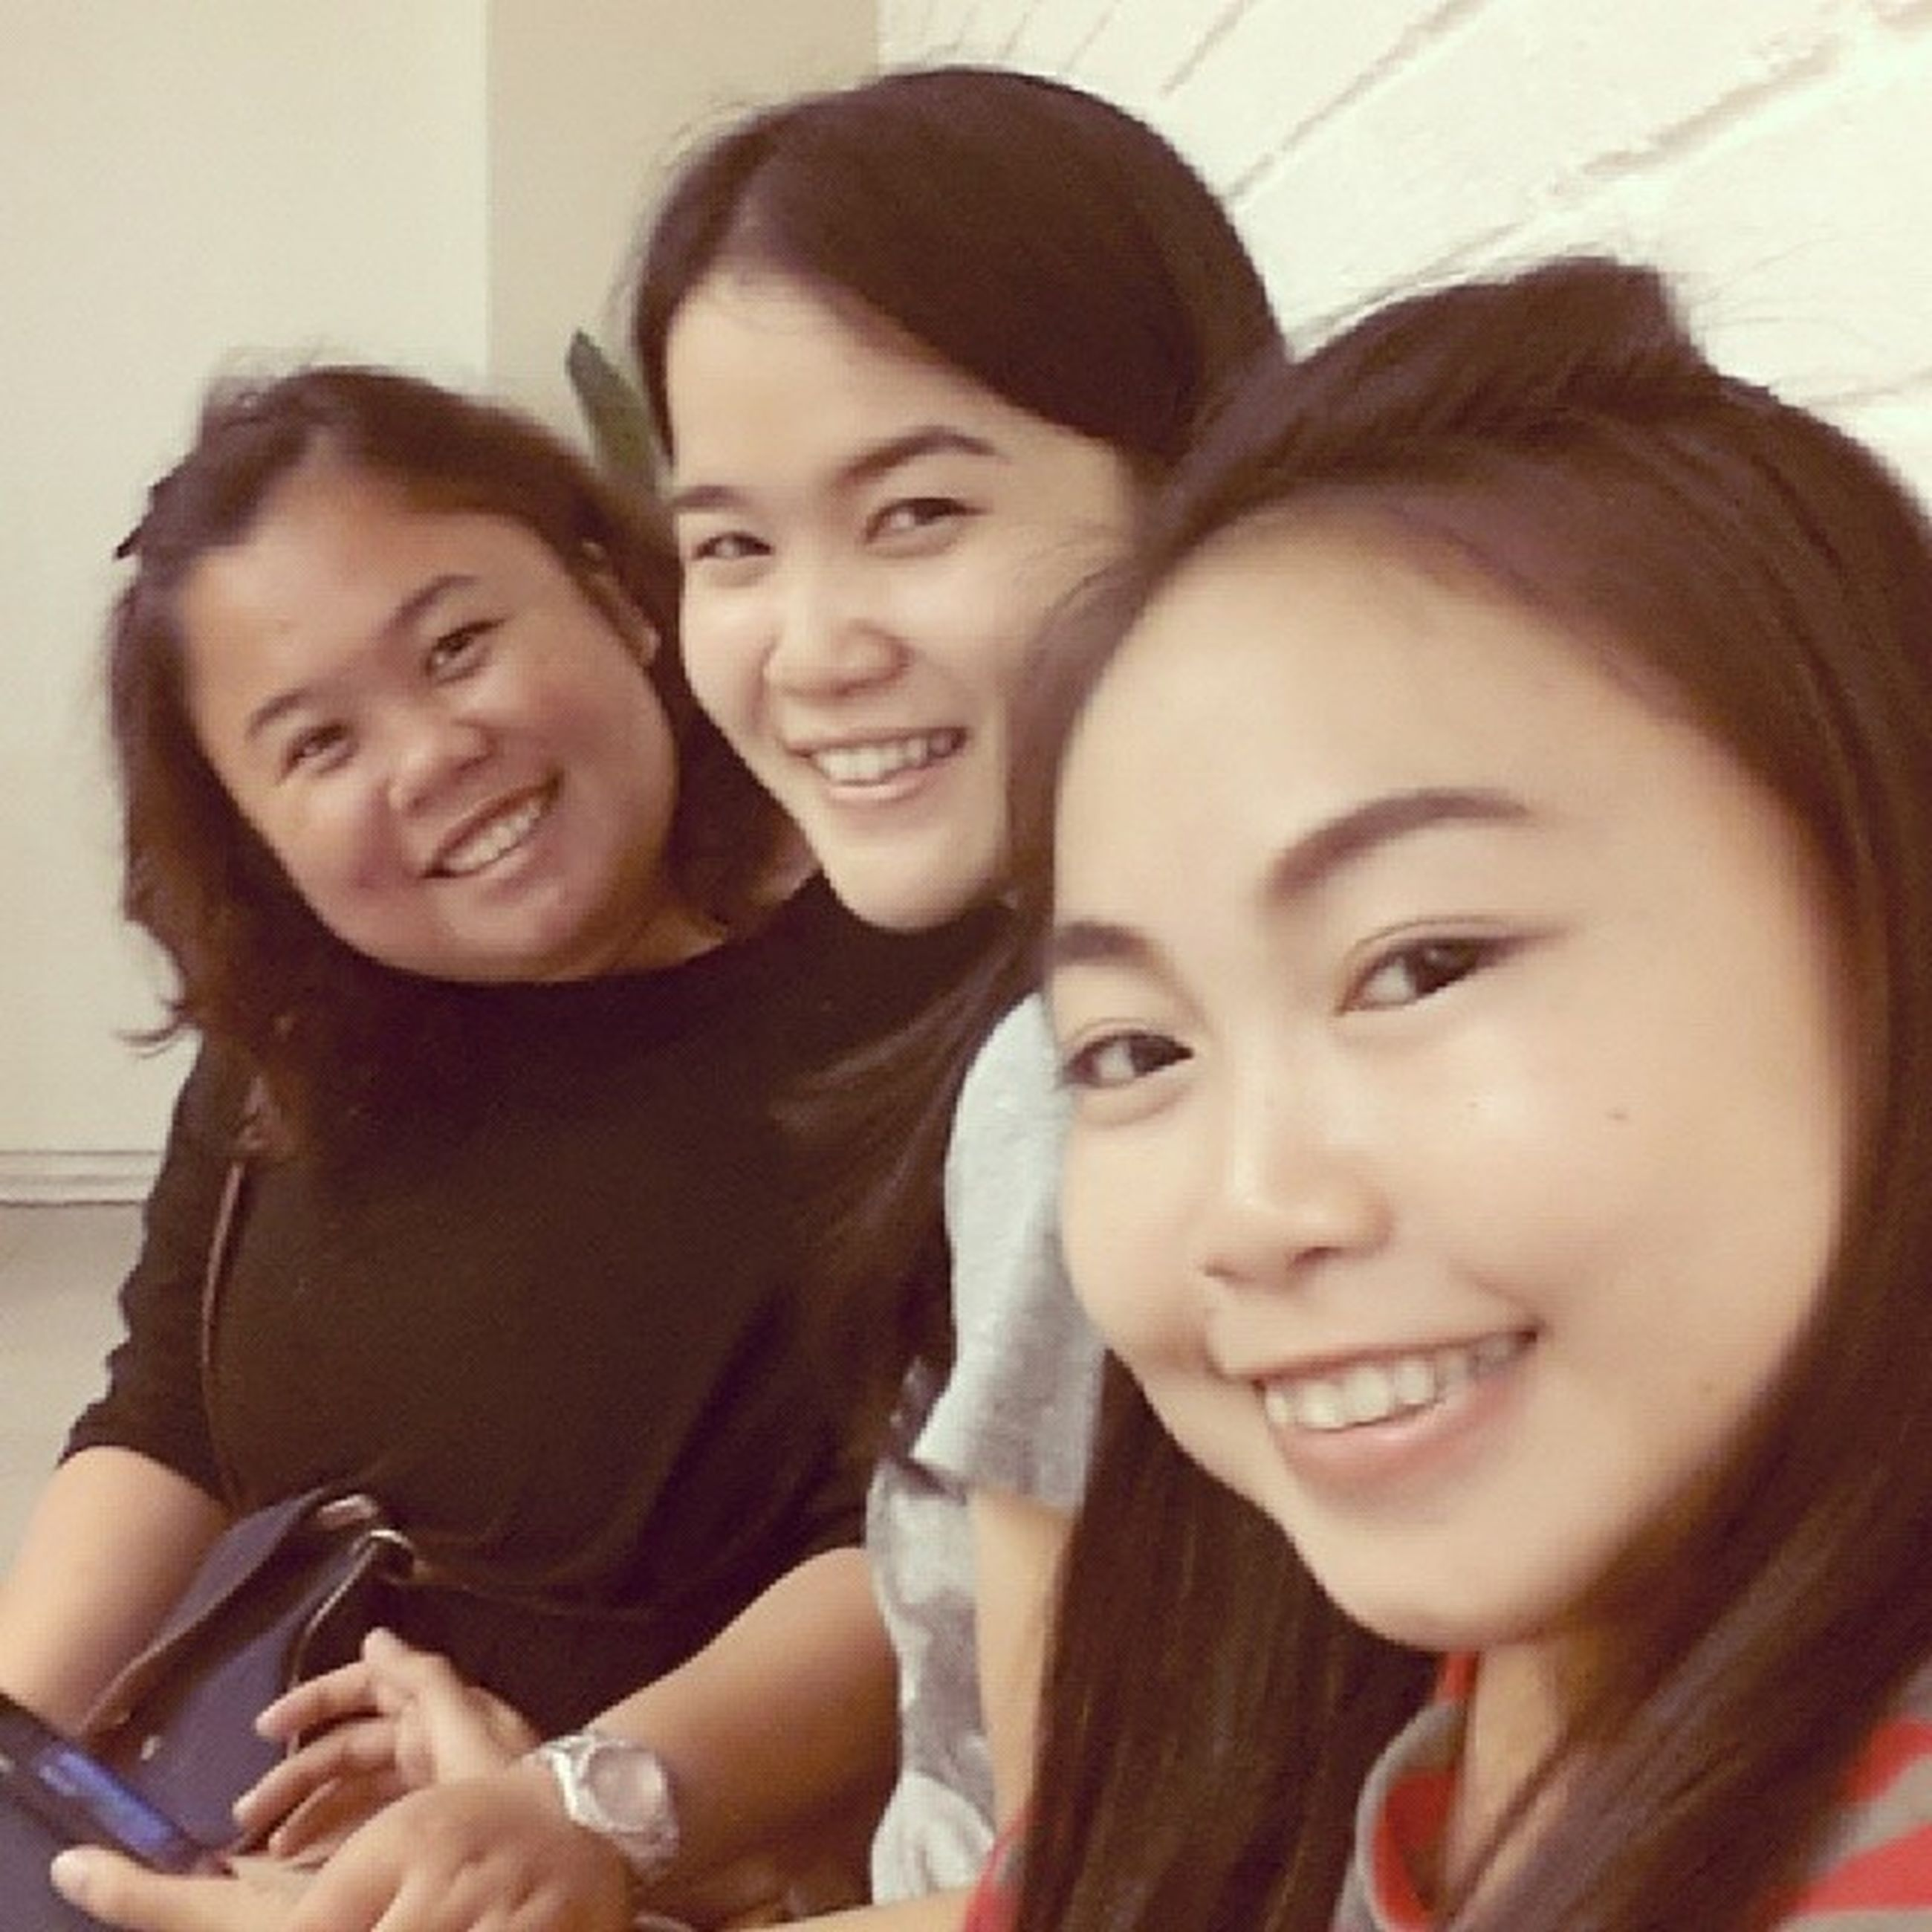 togetherness, bonding, person, lifestyles, portrait, looking at camera, love, smiling, happiness, leisure activity, young women, young adult, front view, friendship, indoors, toothy smile, family